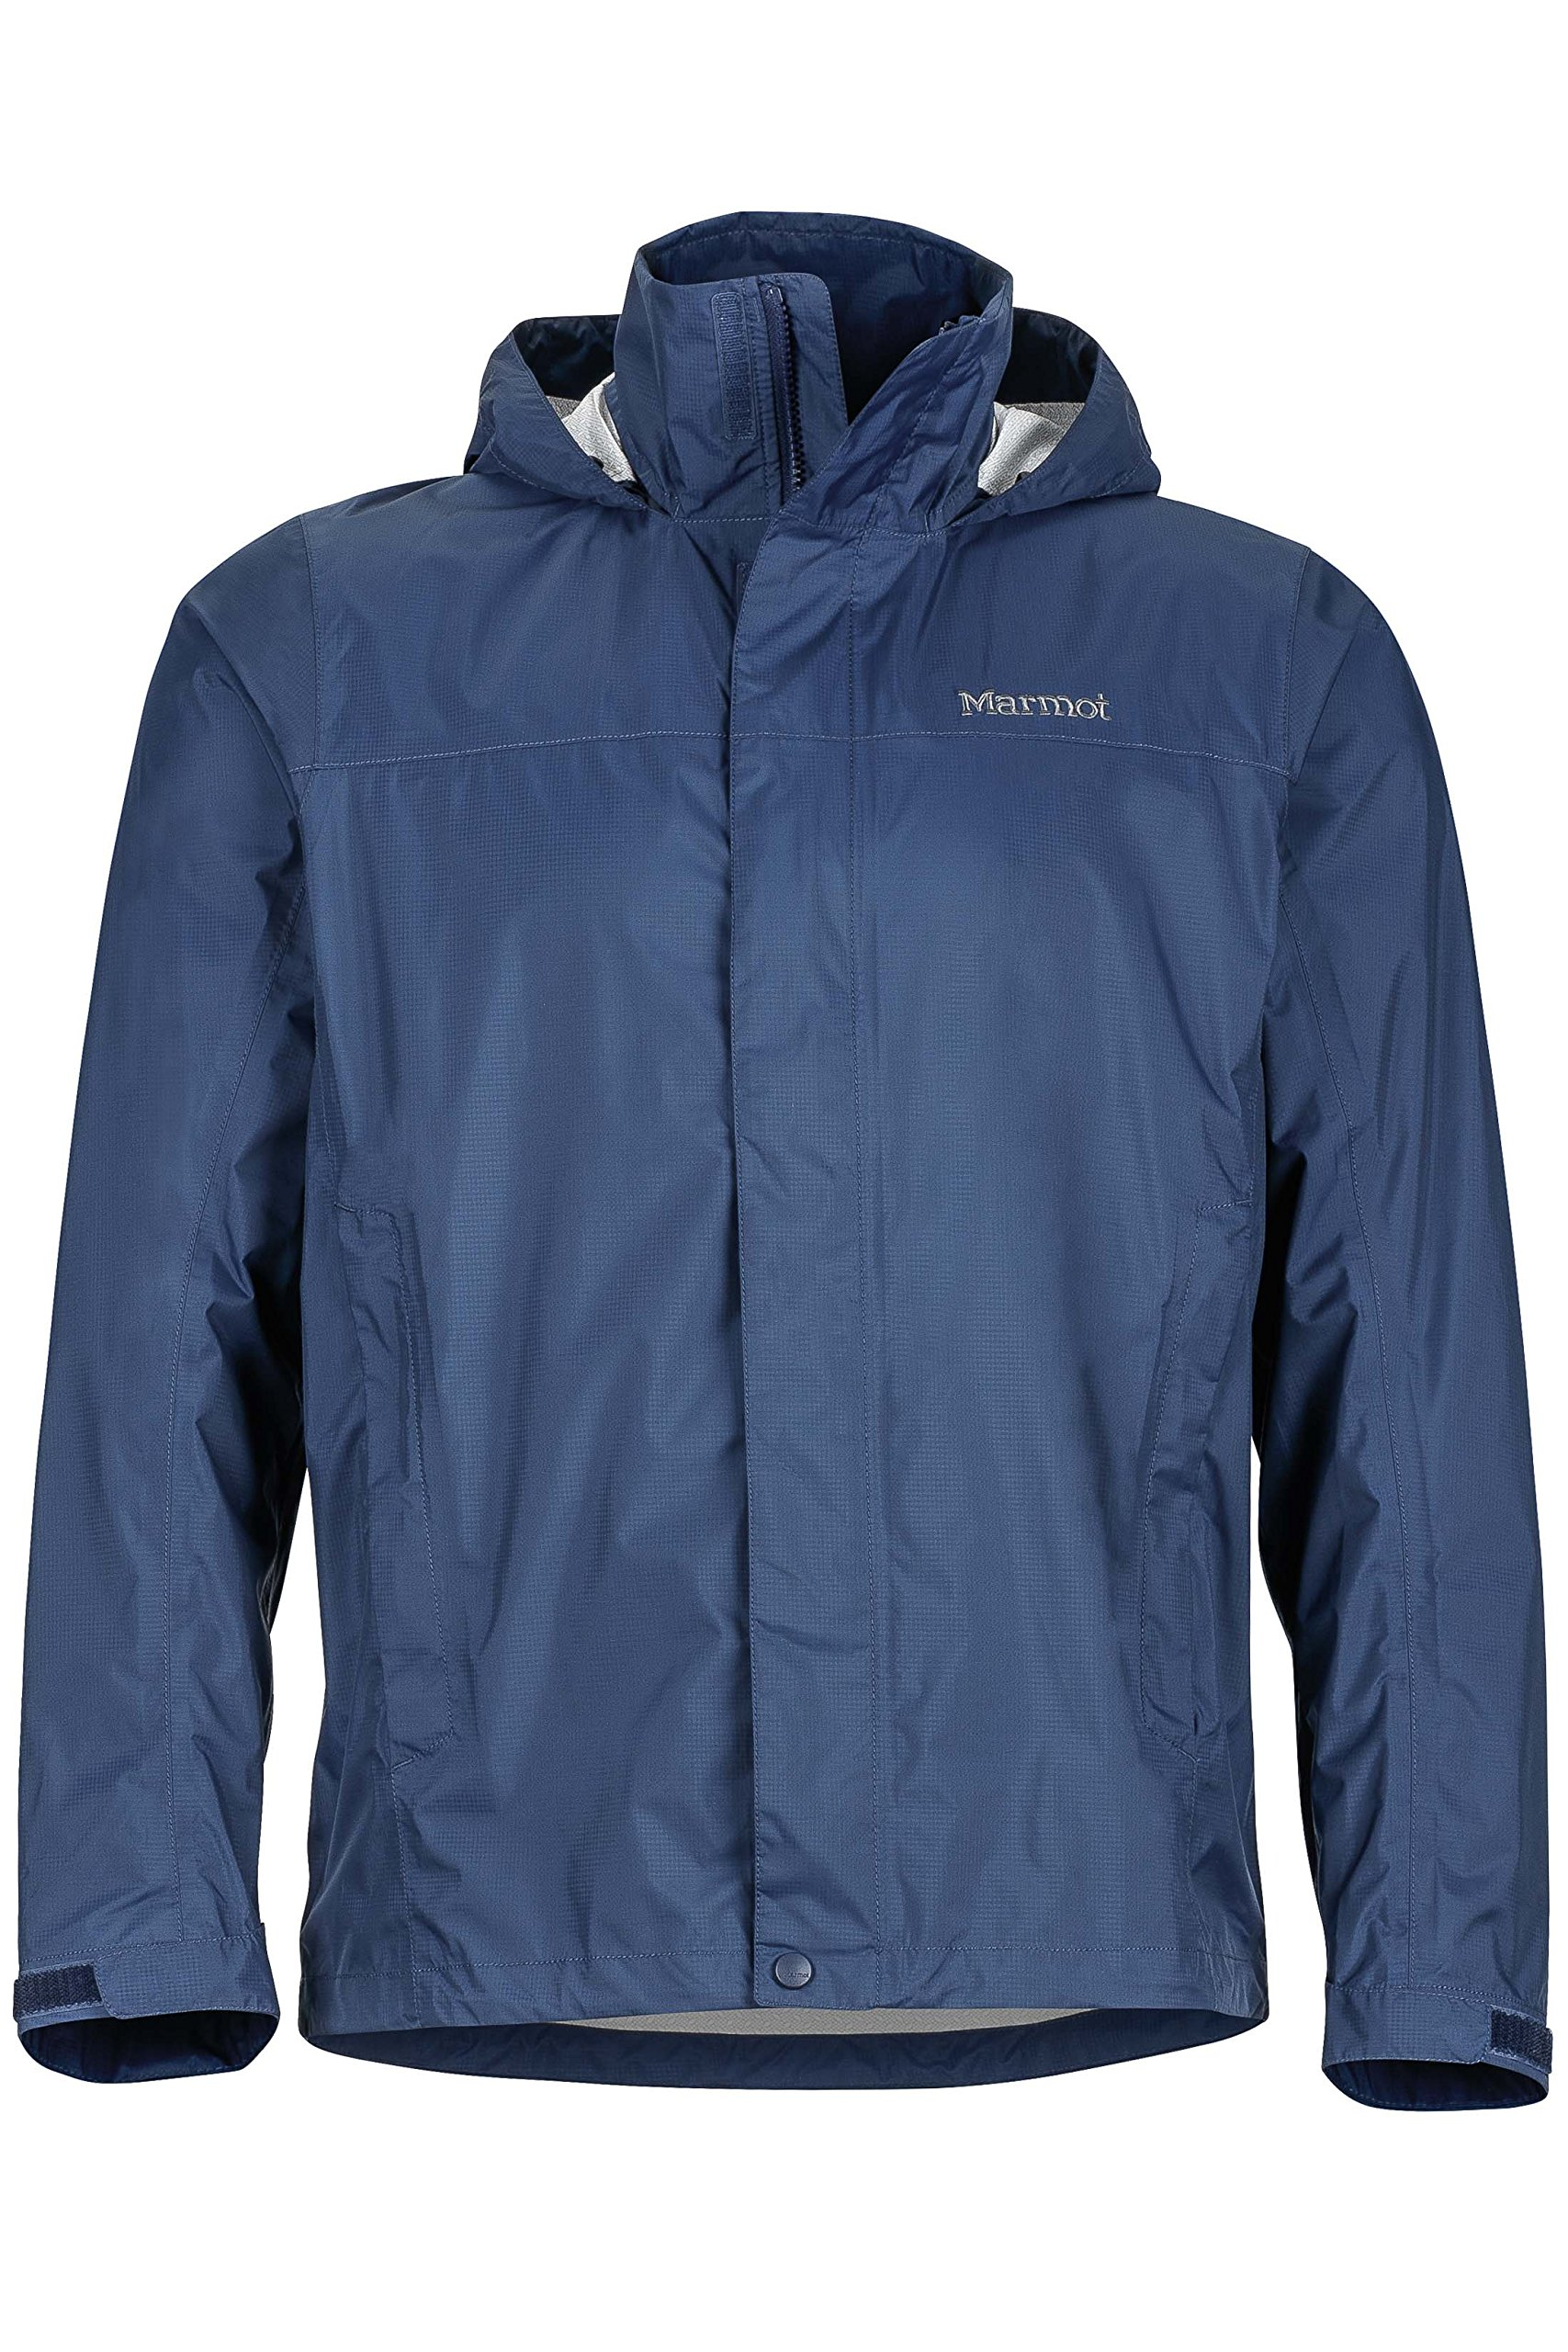 Marmot PreCip Jacket - Men's Arctic Navy Large by Marmot